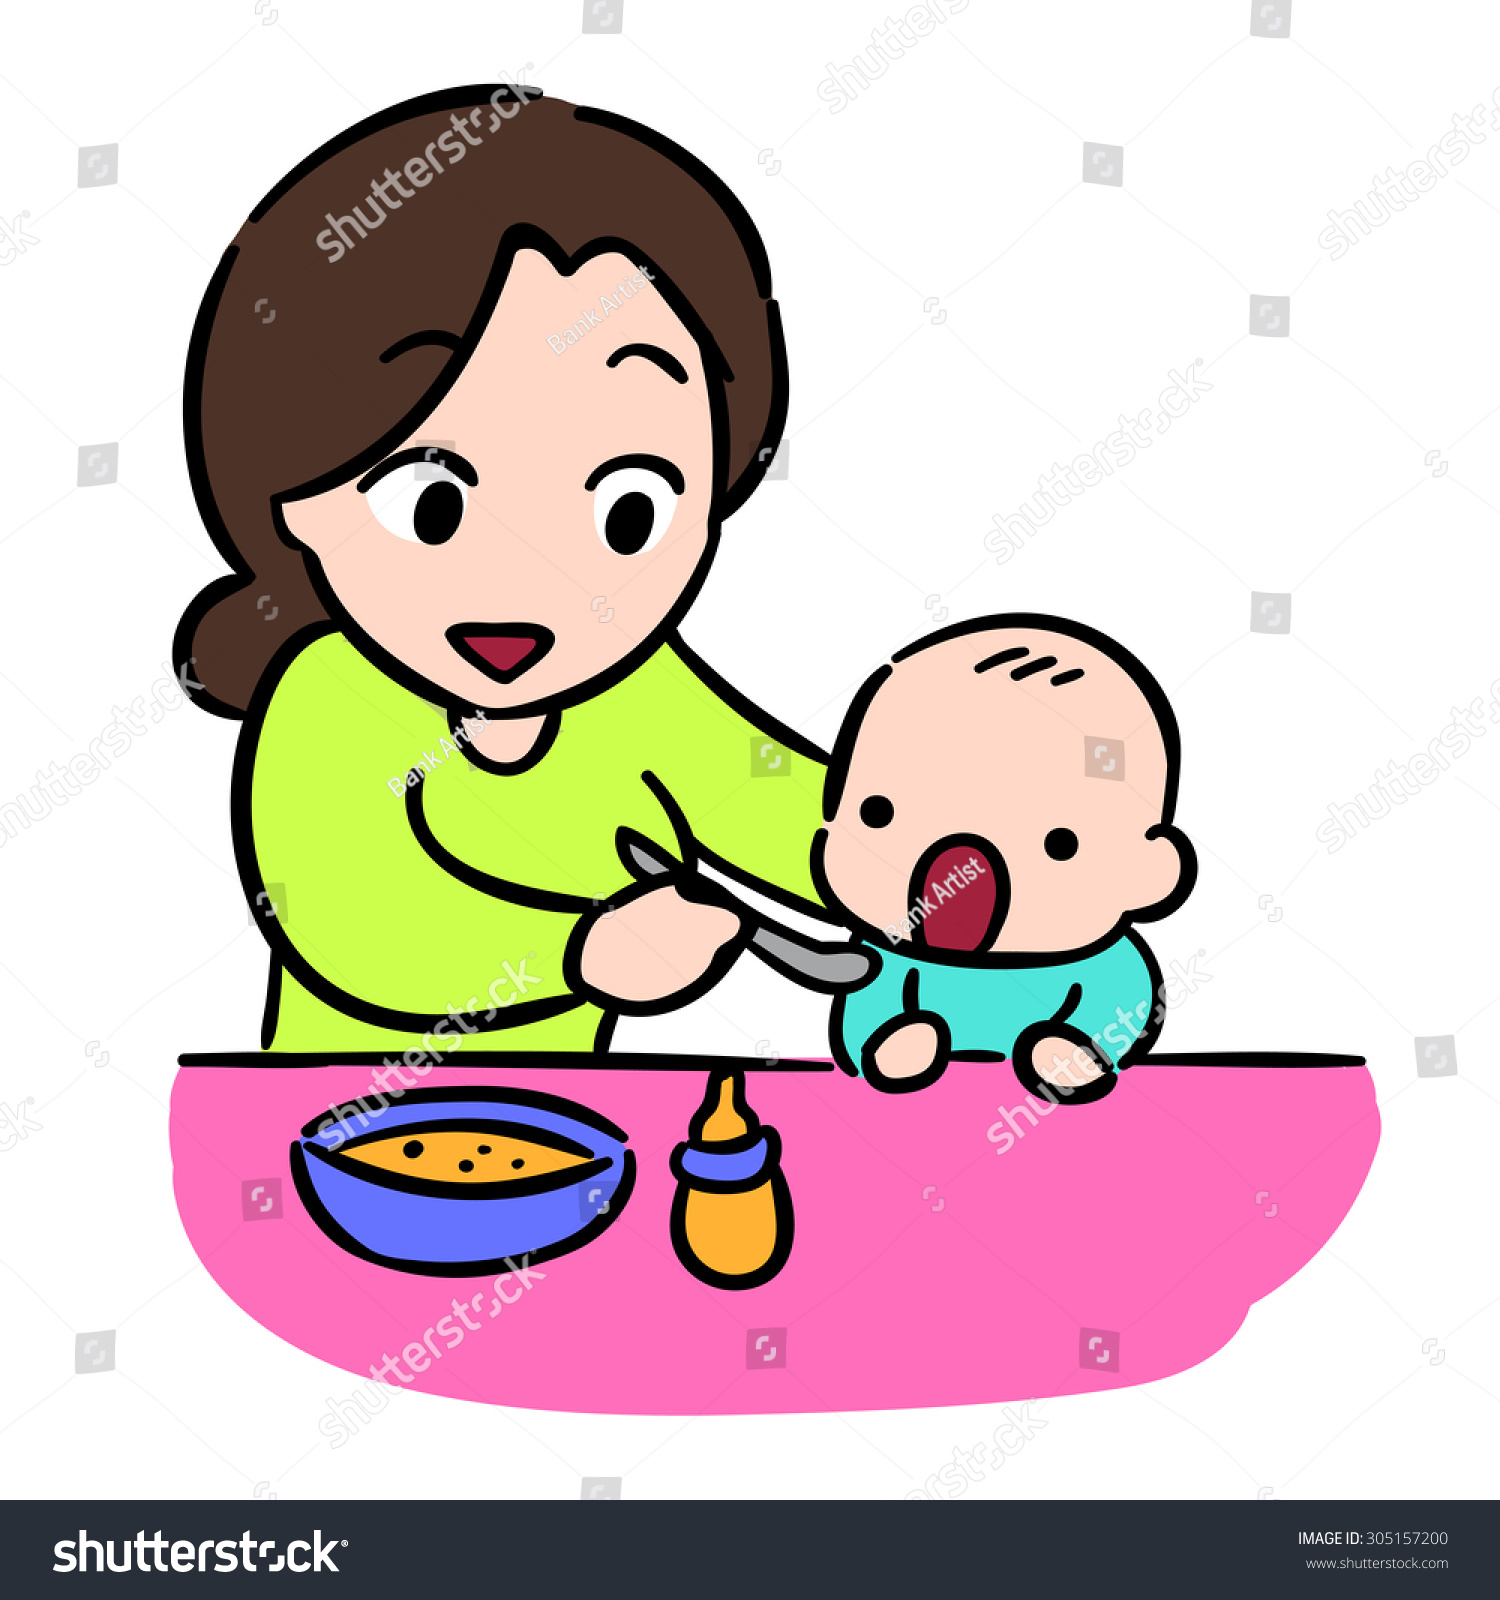 Delightful Baby Eating Chair Attached To Table further 920469 furthermore Cute Child With Spoon Stock Image additionally Modernhomefront blogspot besides 393139 Official Club Lexus Watch Thread Many Merged Threads 54. on badger high chair